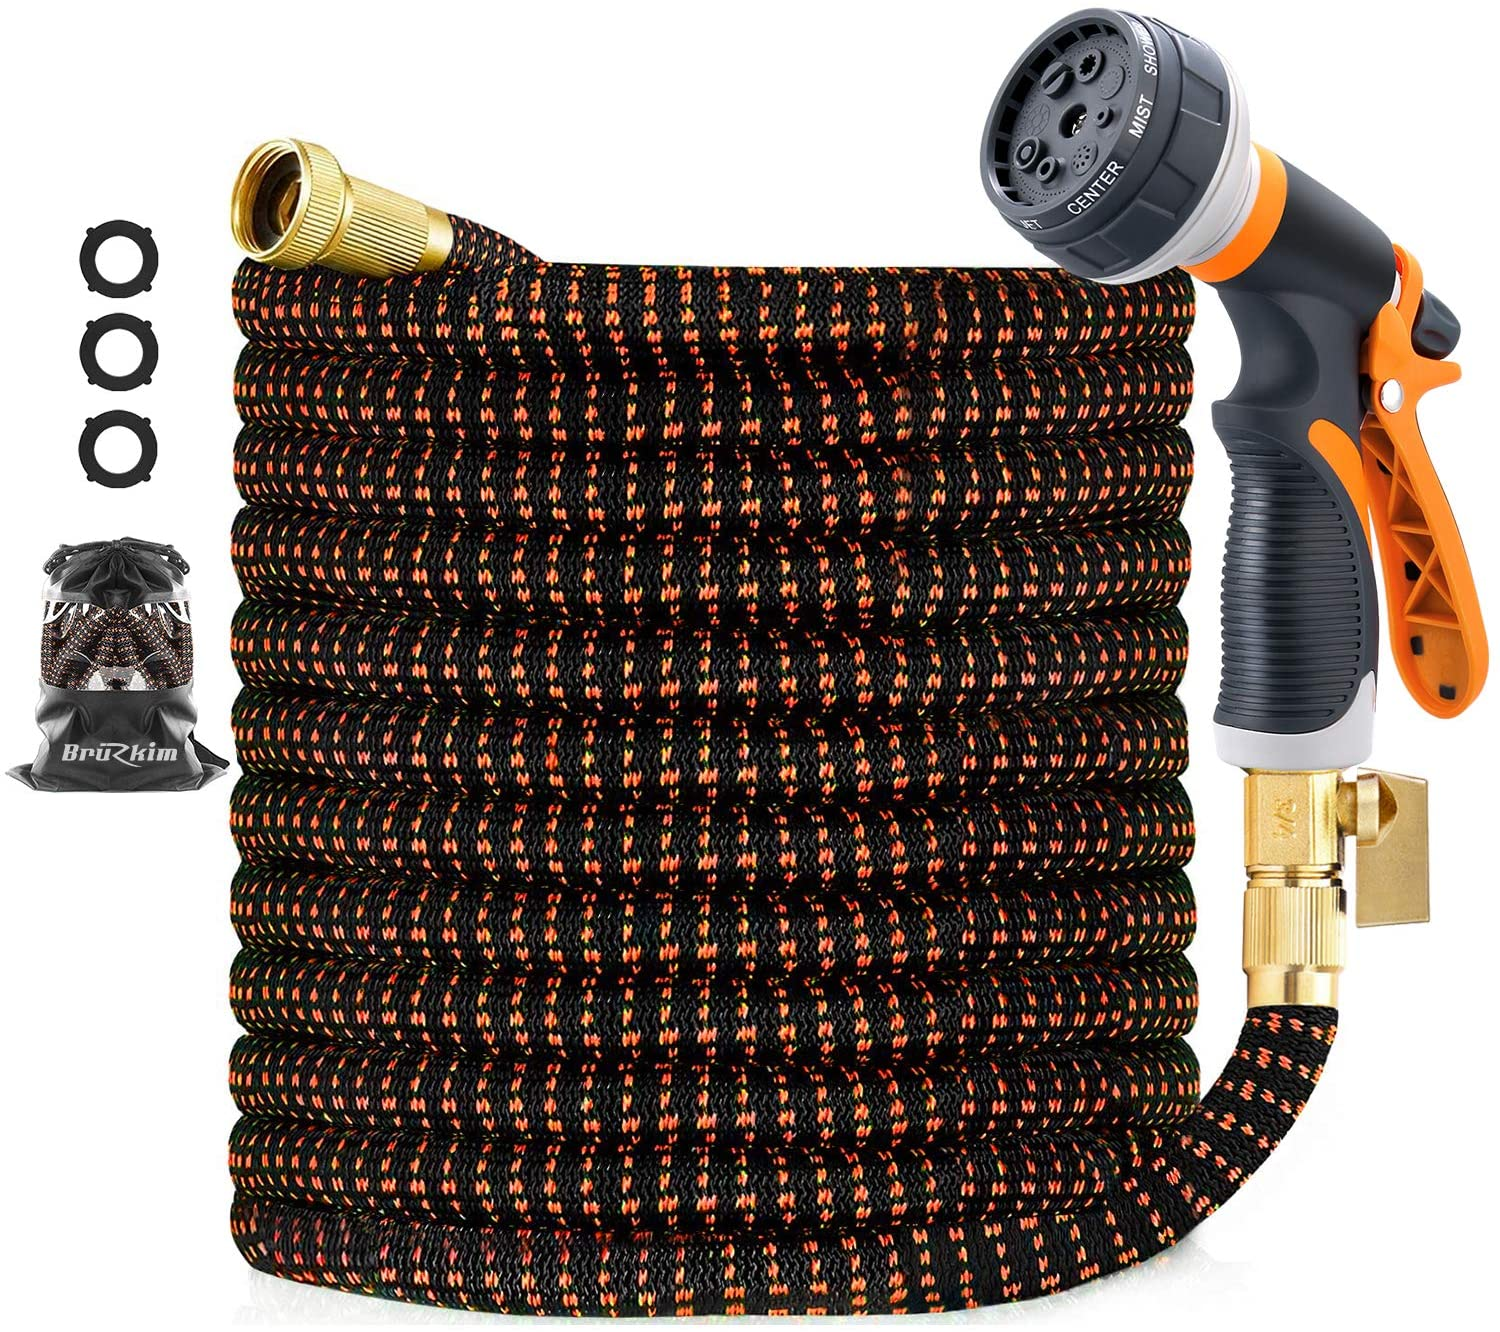 100ft Garden Hose, Expandable, Durable Lightweight, Flexible Expanding, Double Latex Core, 3/4 Solid Brass Fittings, Extra Strength Fabric, 8 Function Spray Nozzle Water Hose (100FT)